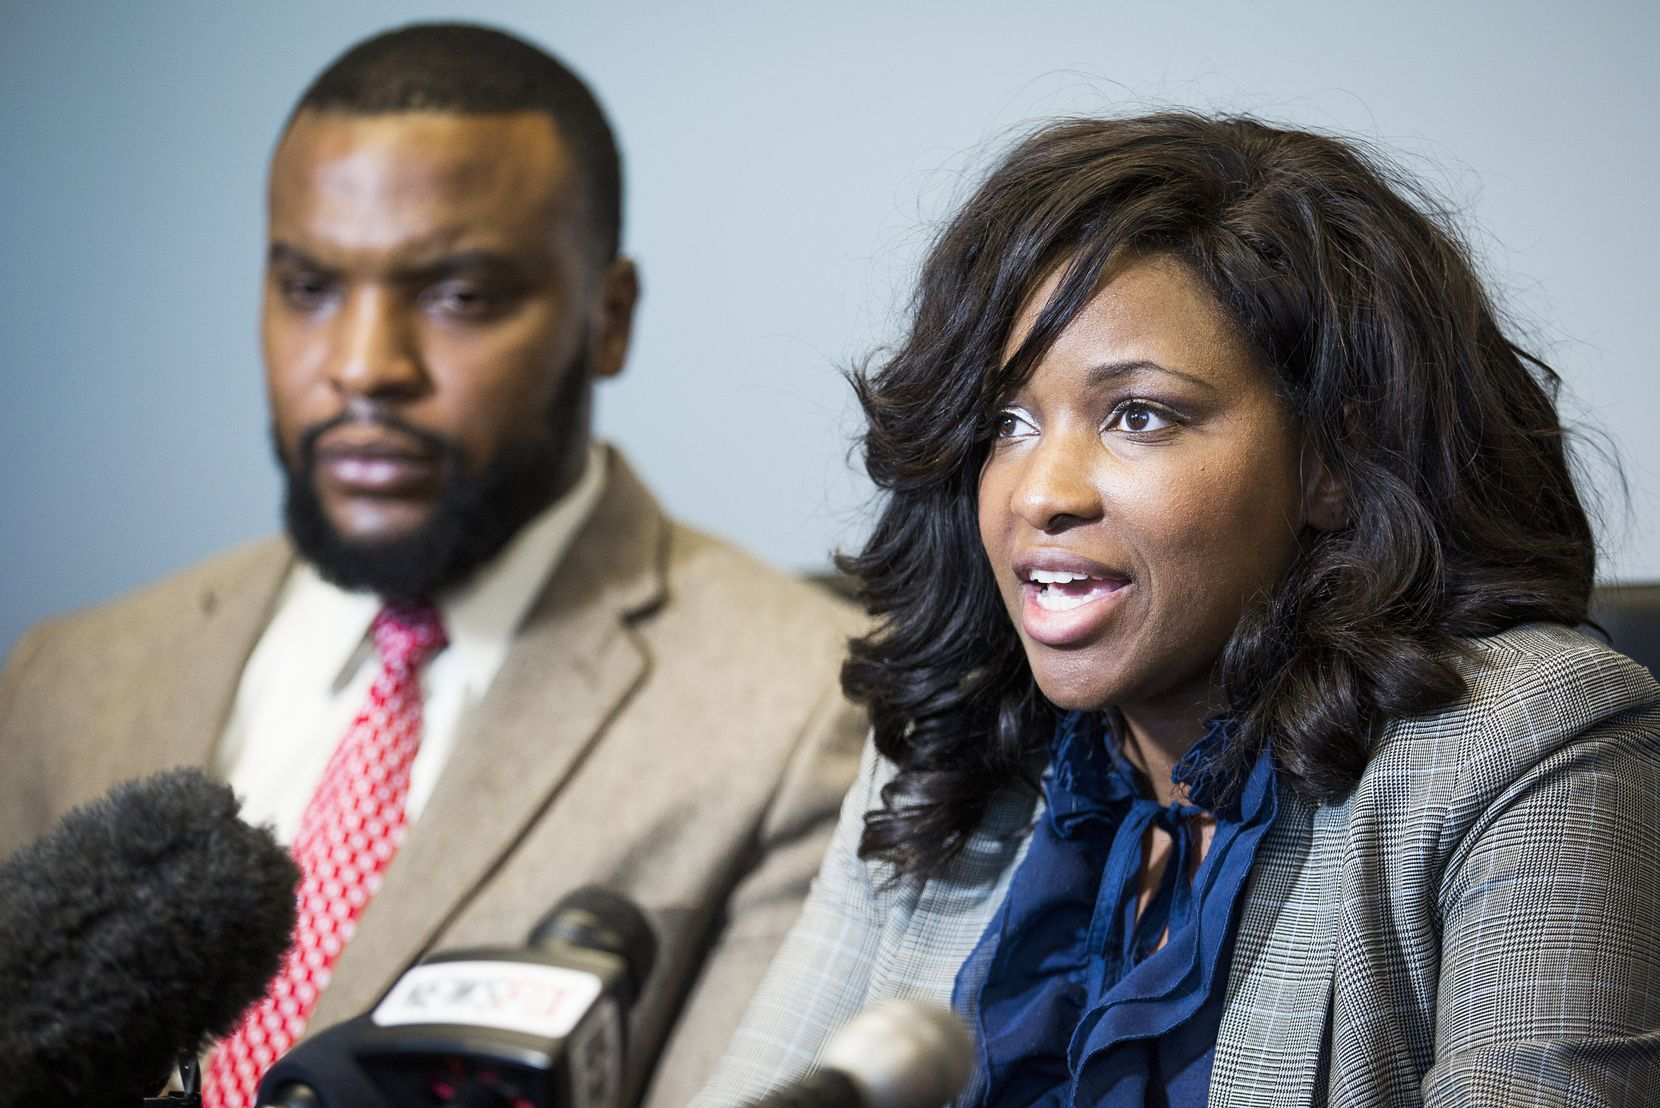 Attorneys Jasmine Crockett (front) and Lee Merritt, who represent Jacqueline Craig, hold a press conference at their offices on Thursday, Jan. 26, 2017, in Dallas.